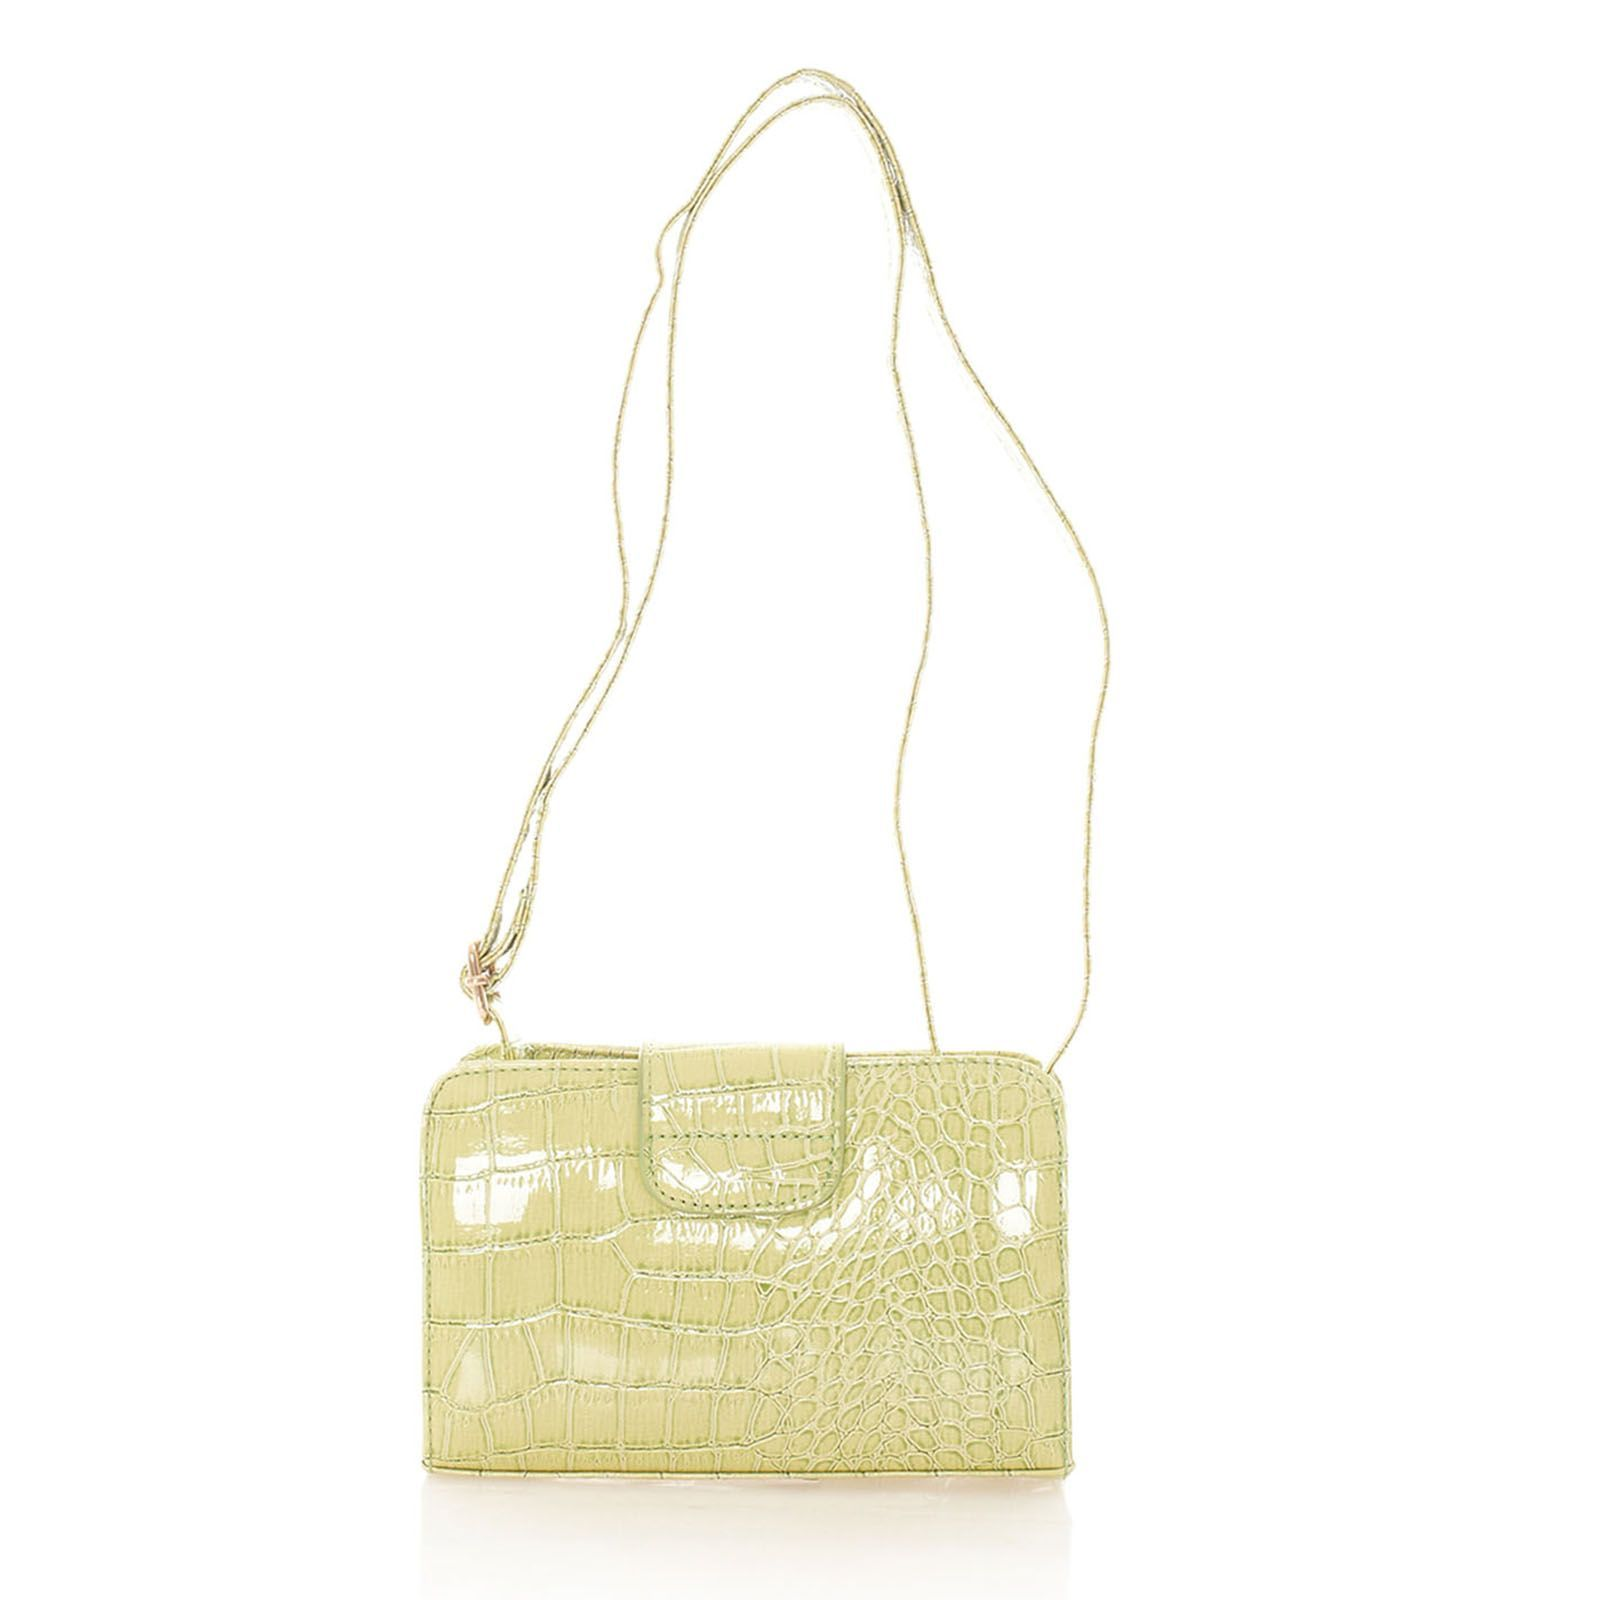 Chic and Go Sac bandoulière - anis   BrandAlley e2c63f024aa8